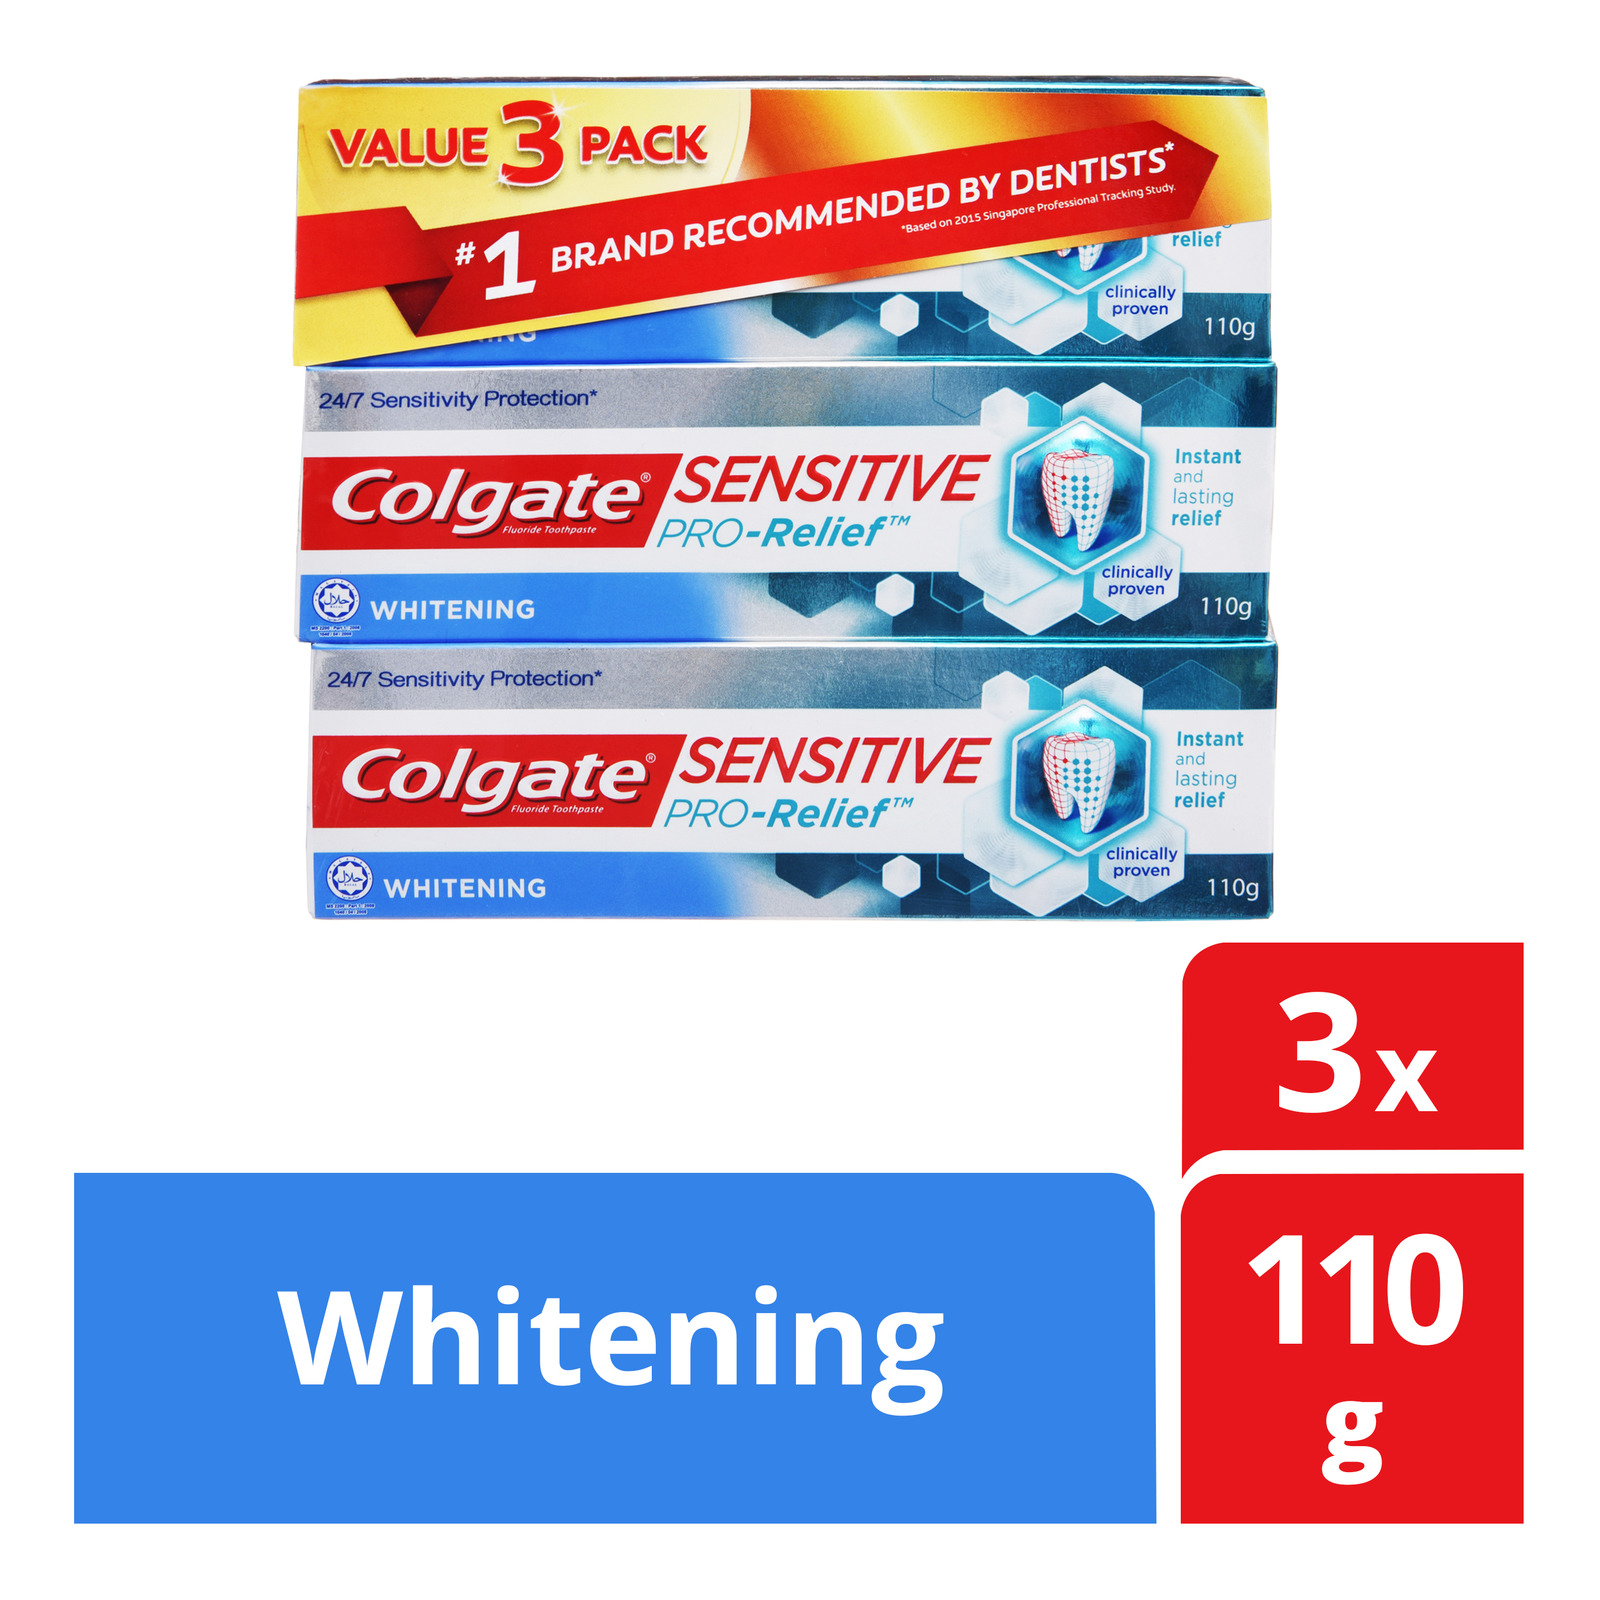 Colgate Sensitive Pro-Relief Toothpaste - Whitening